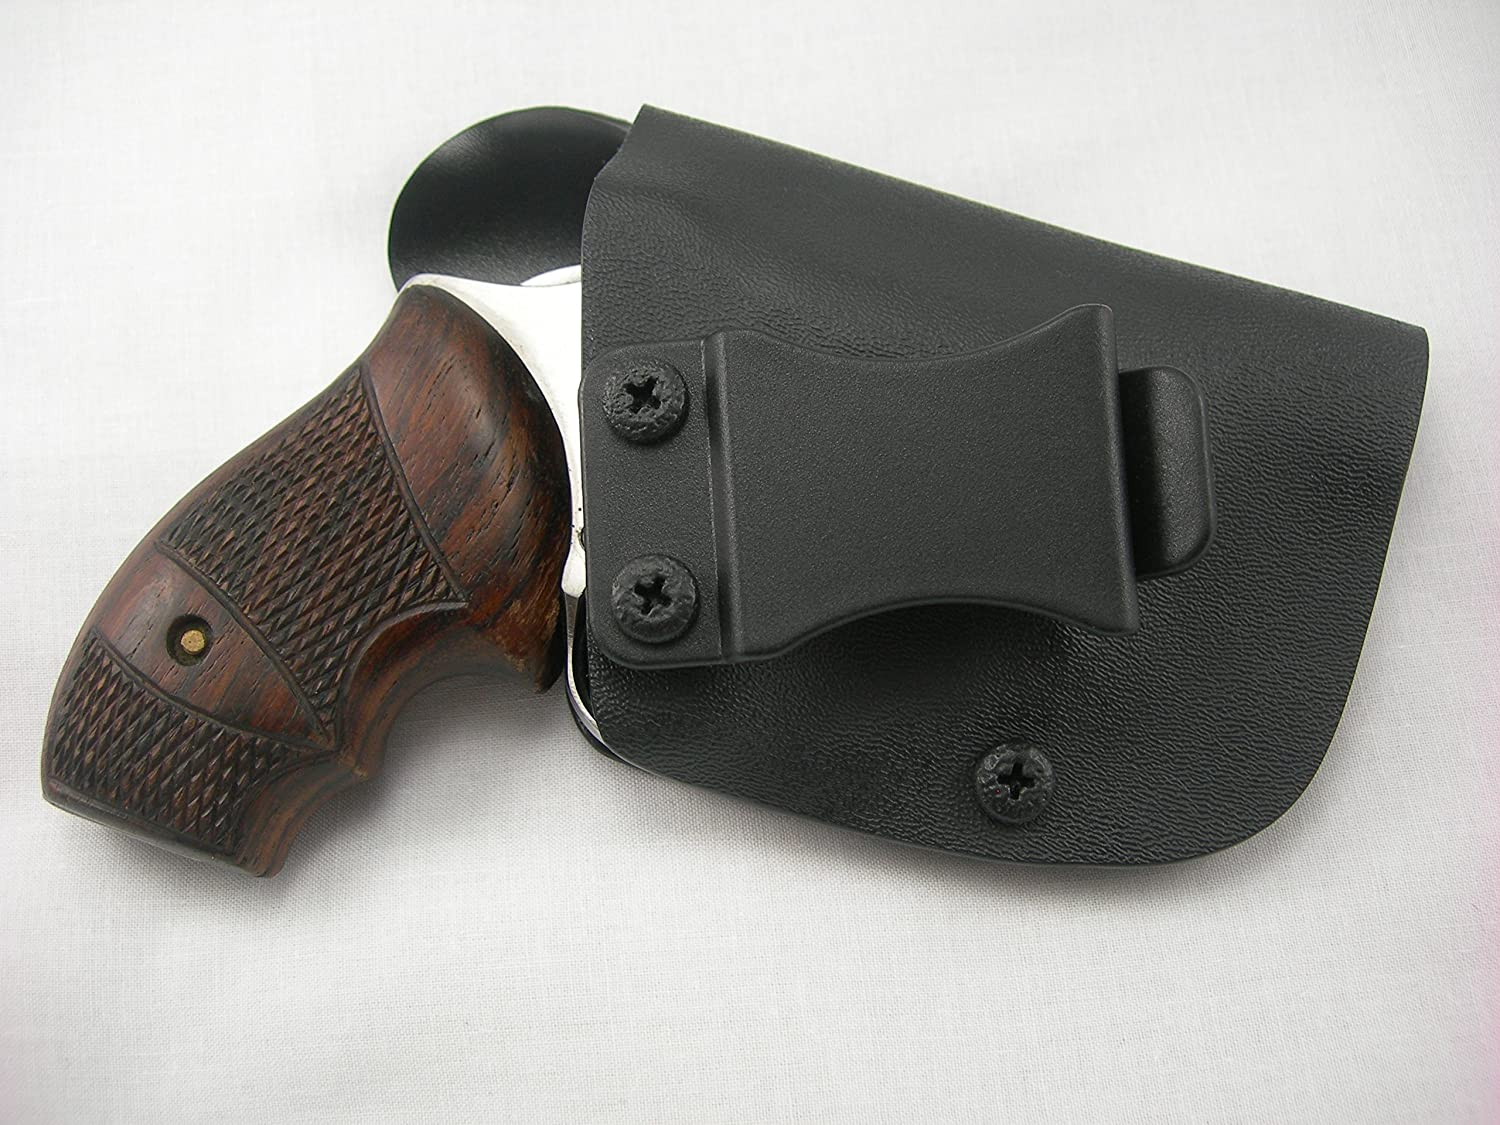 Amazon.com : Smith and Wesson J Frame Outlaw Kydex IWB Holster ...